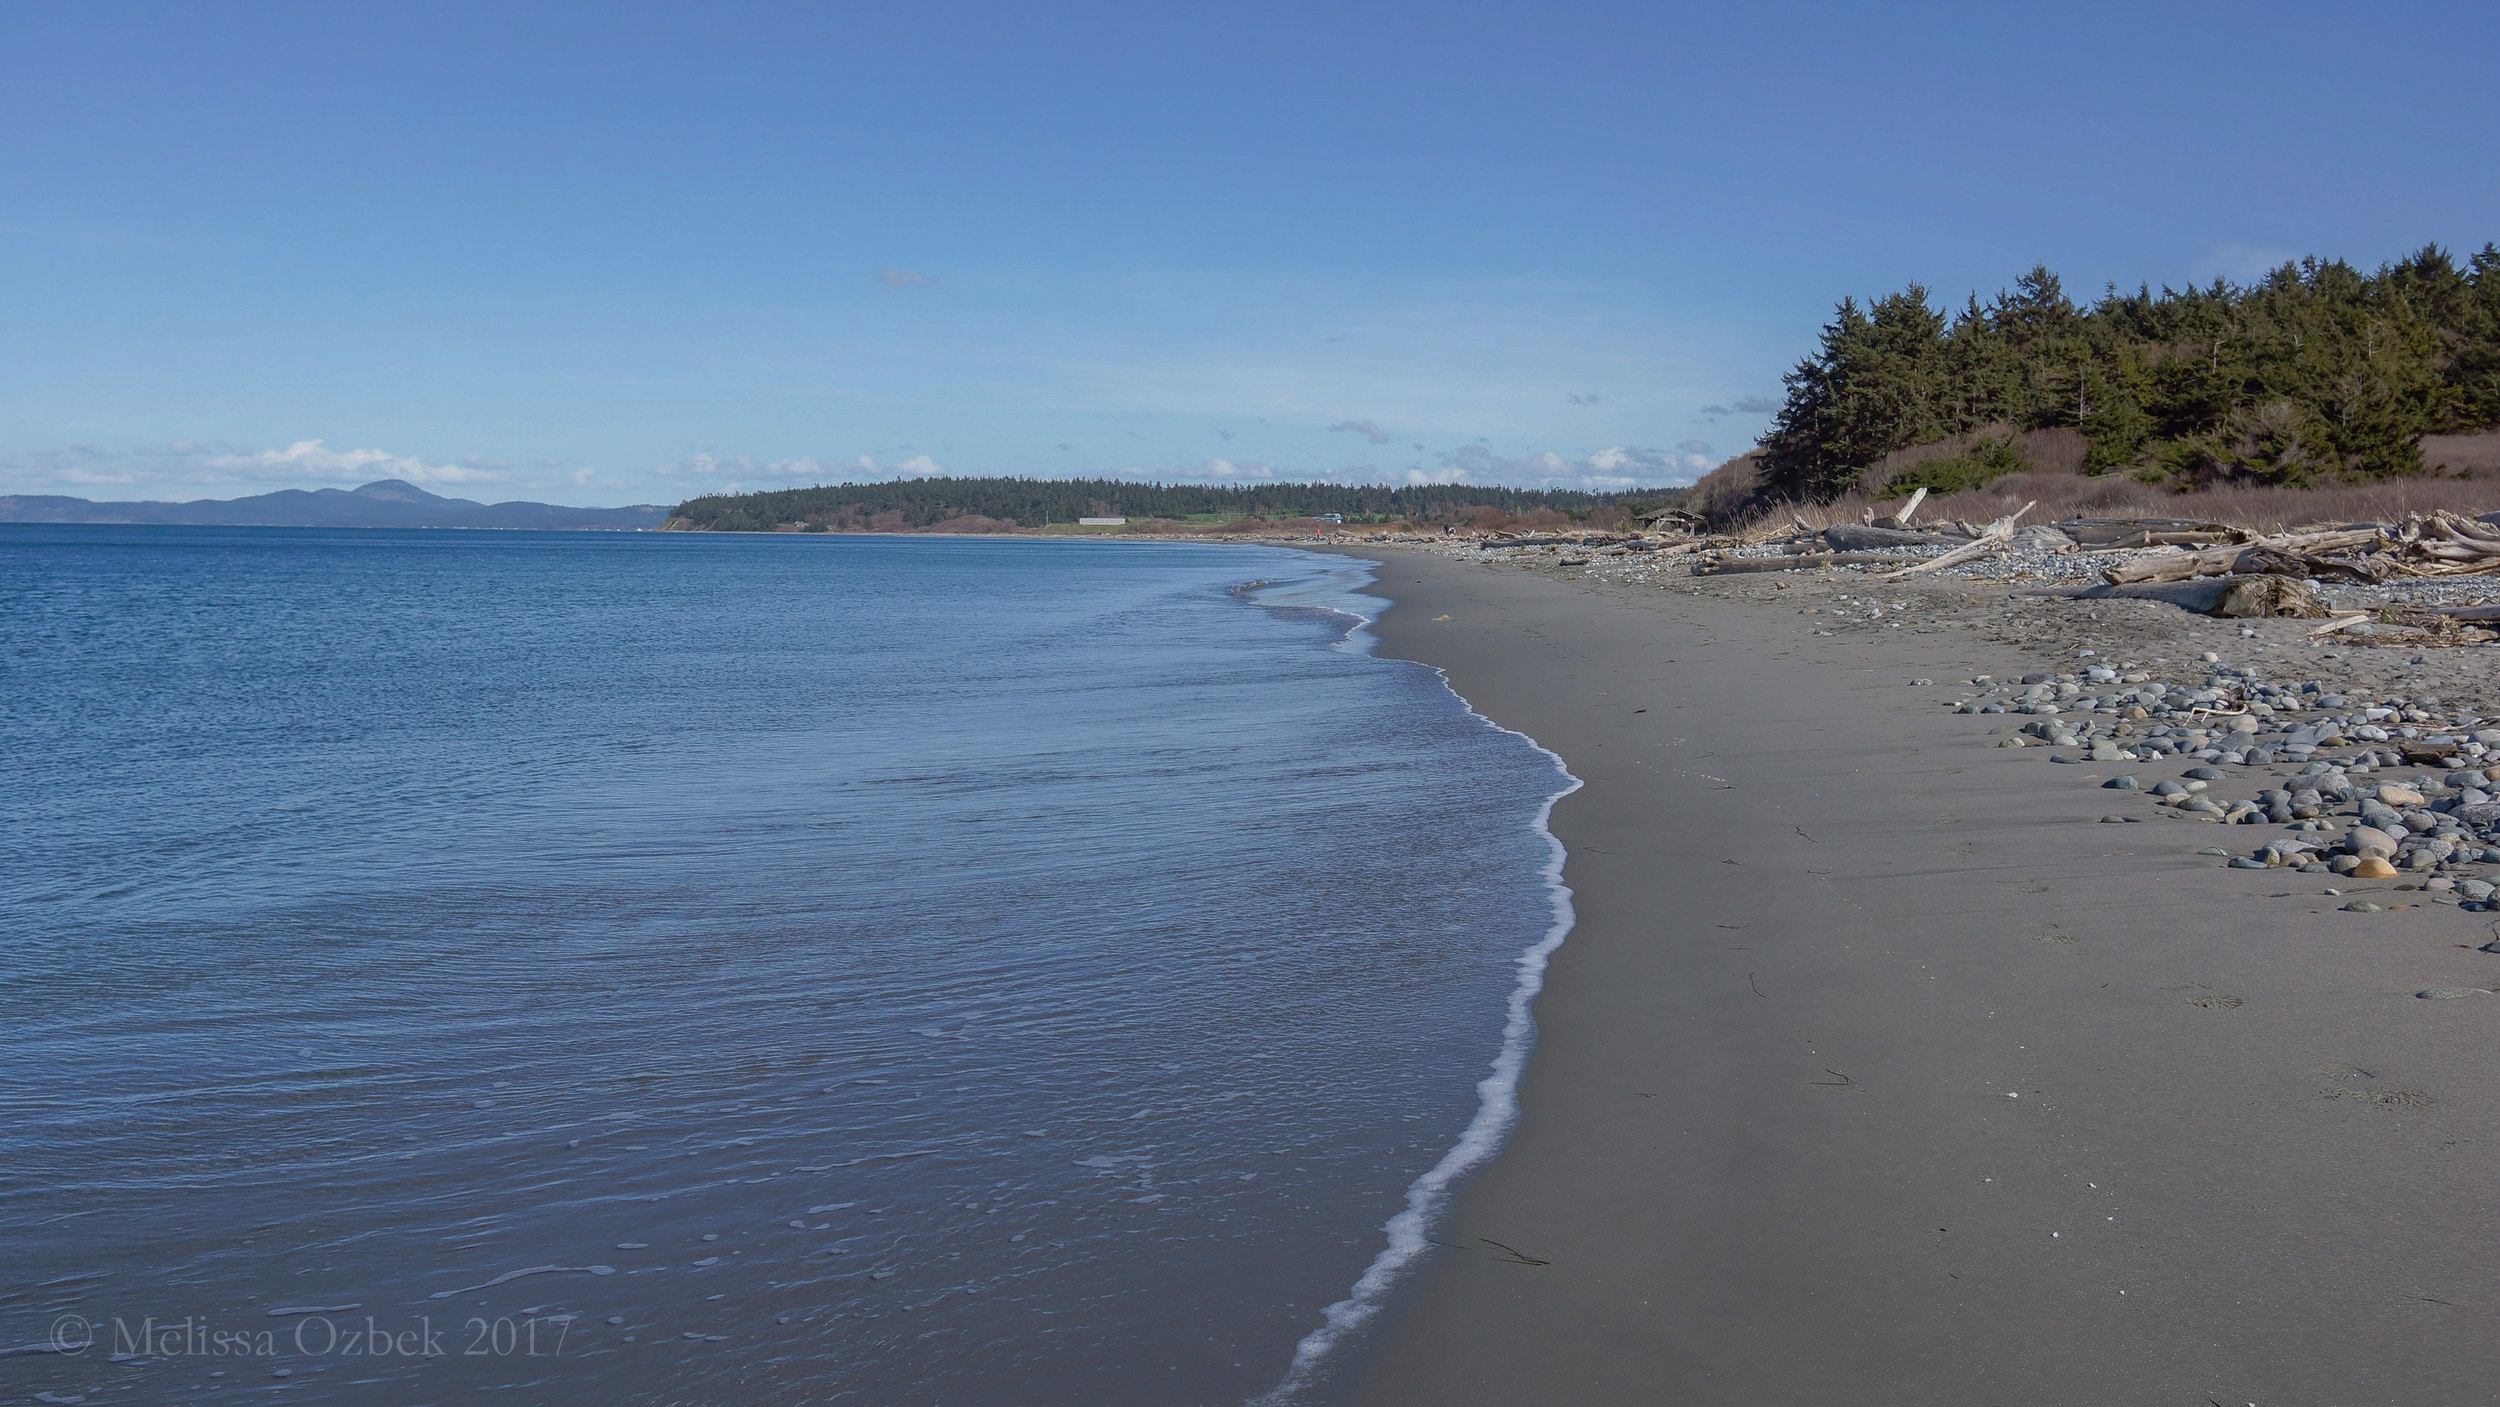 5. Beach at Joseph Whidbey State Park